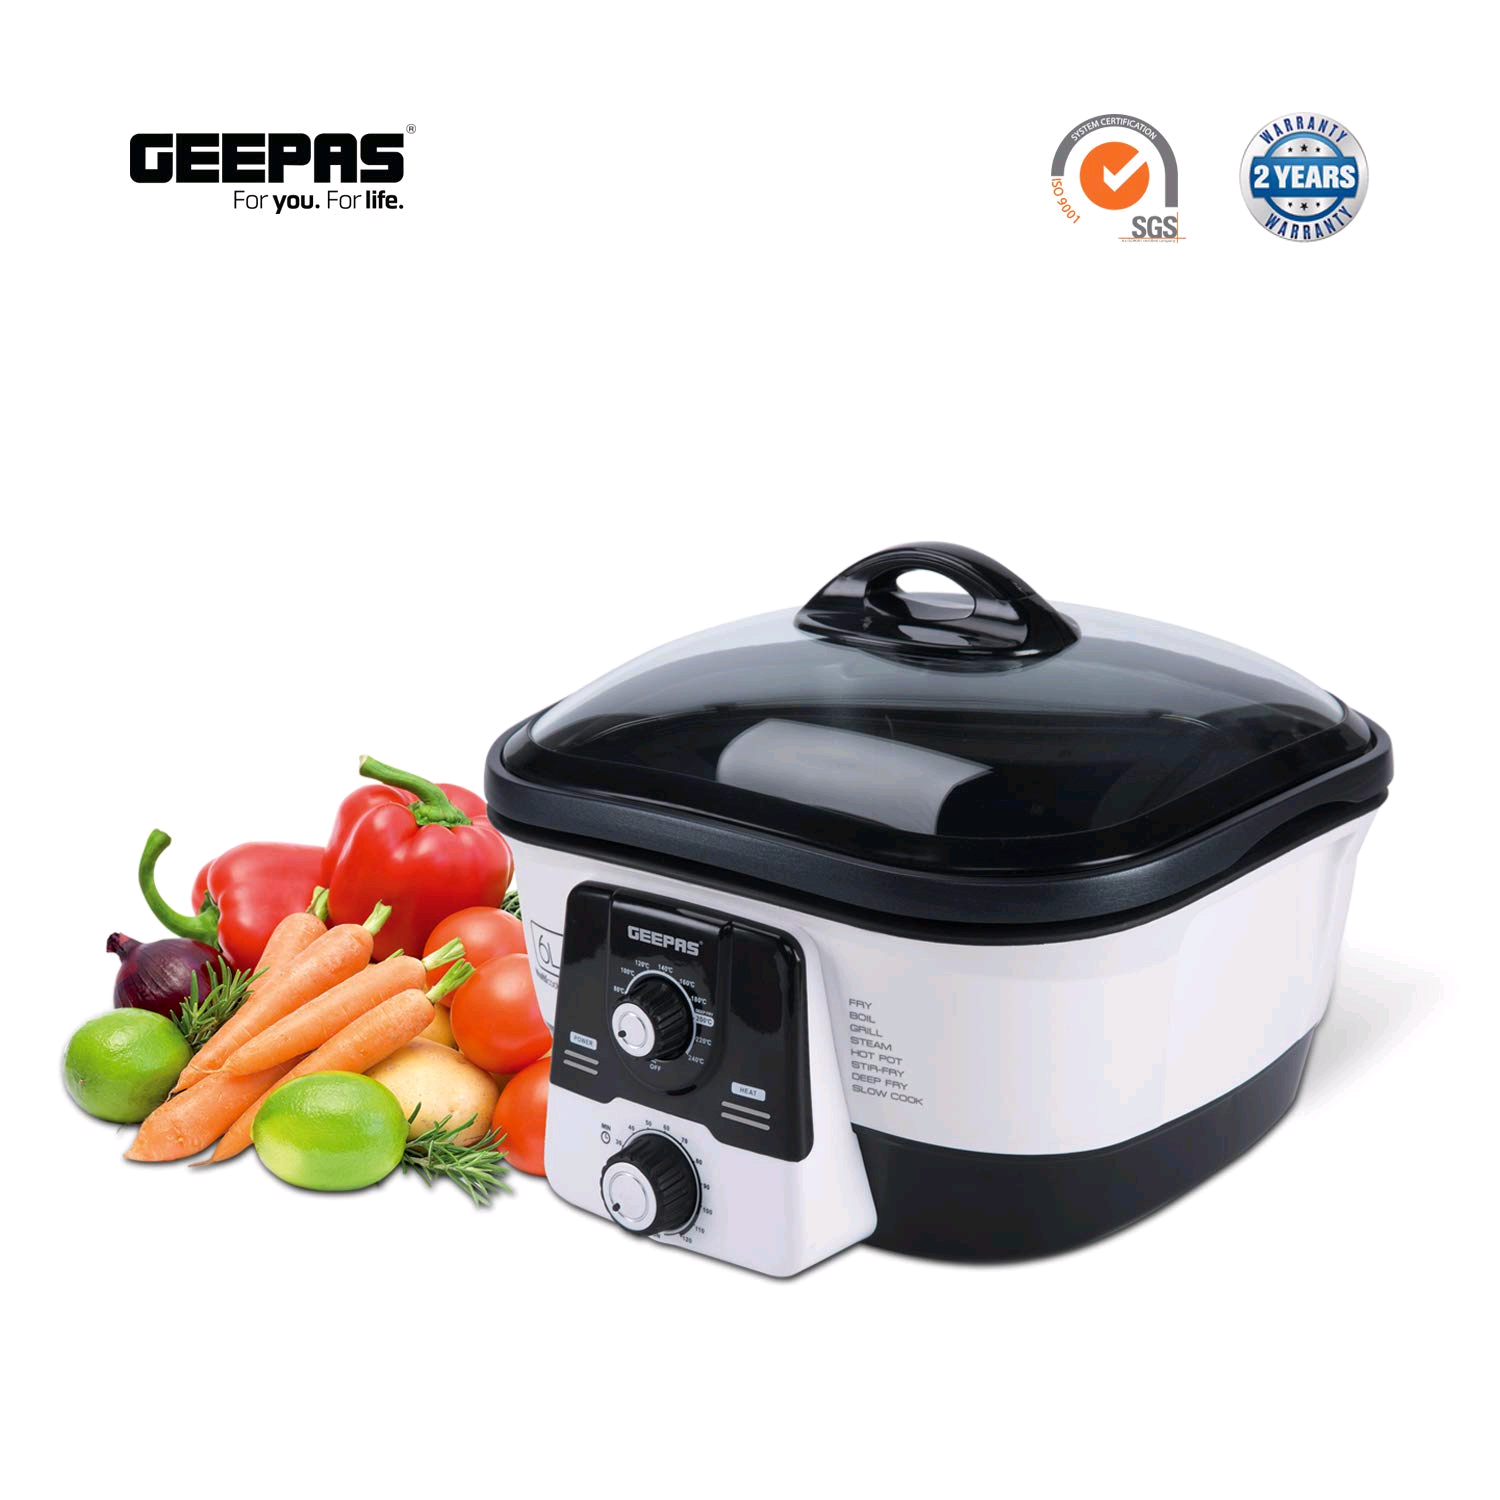 Geepas 8 In 1 Multicooker 6Litres Non Stick Inner Pot